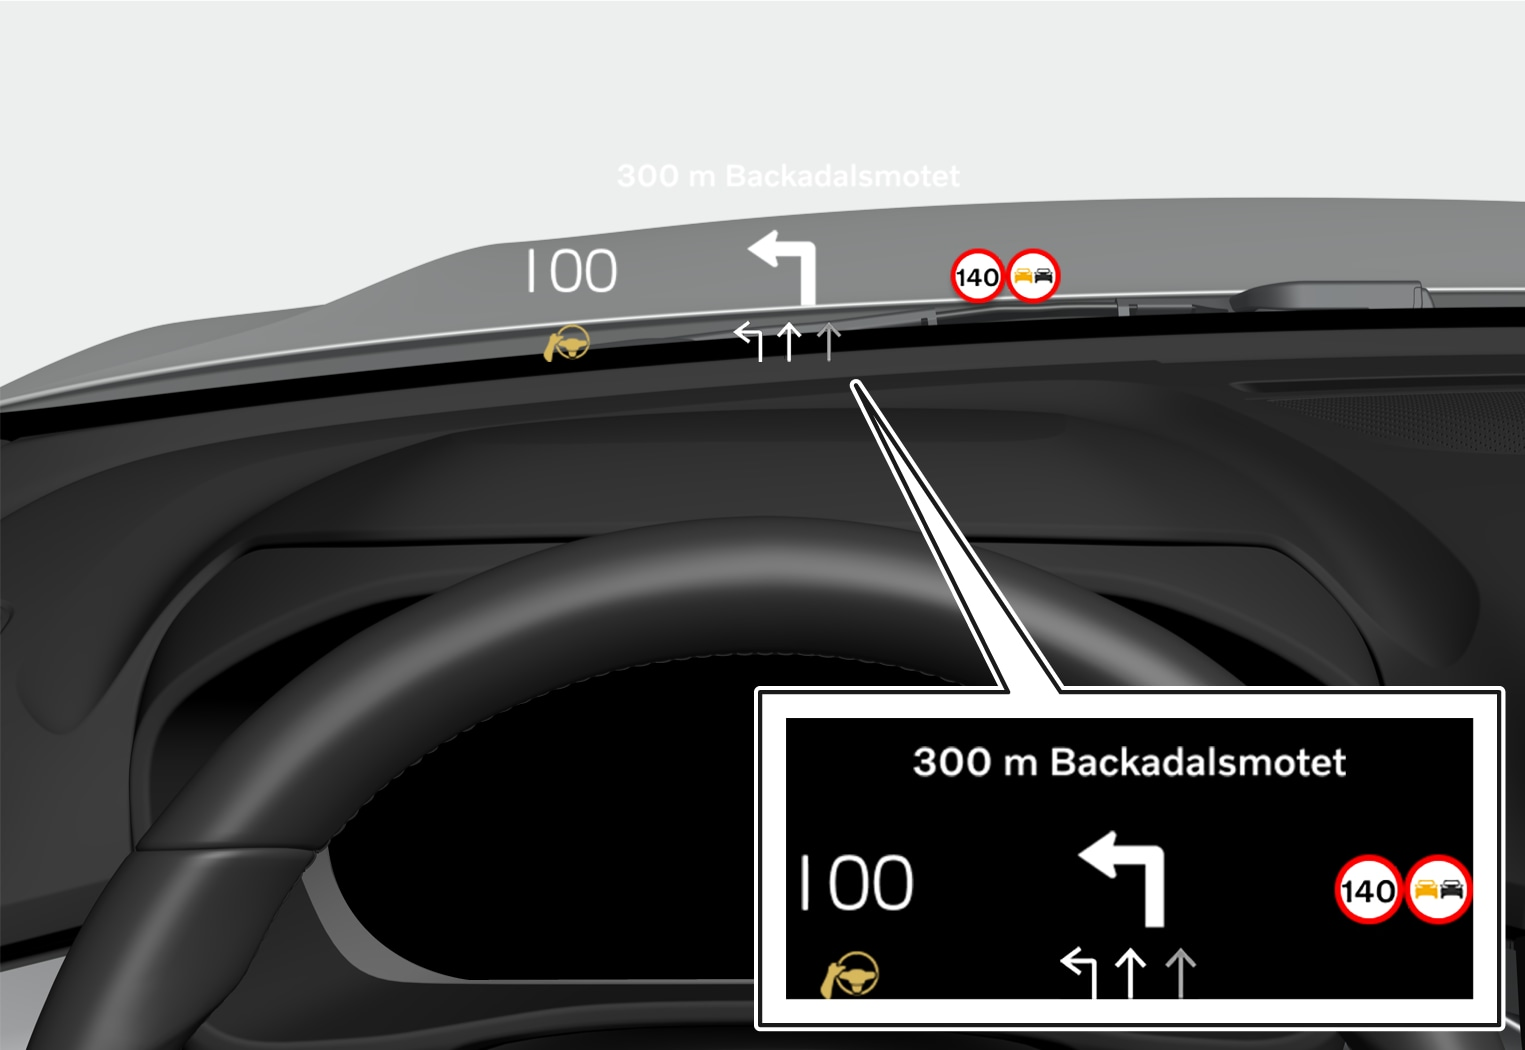 P5P6-21w22-Head-up display, overview